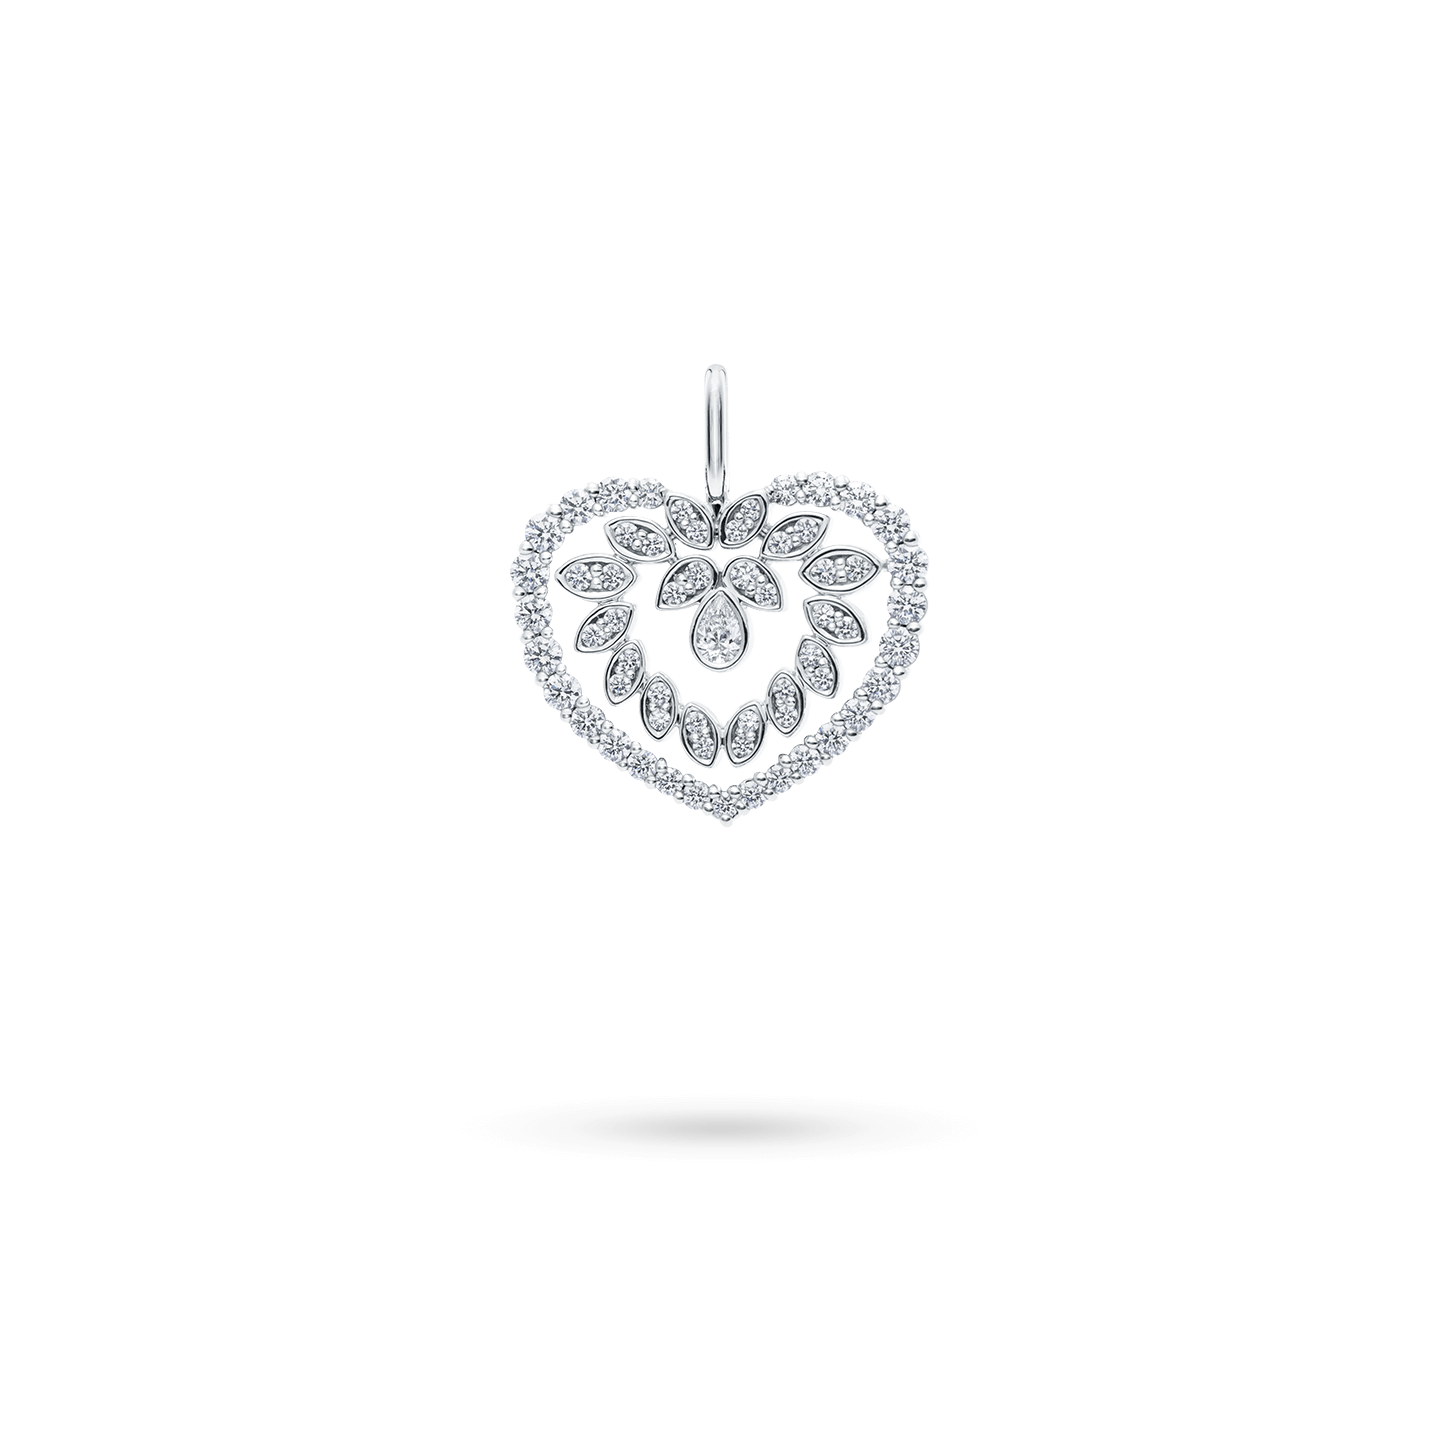 Diamond Cluster HeartCharm, Product Image 1